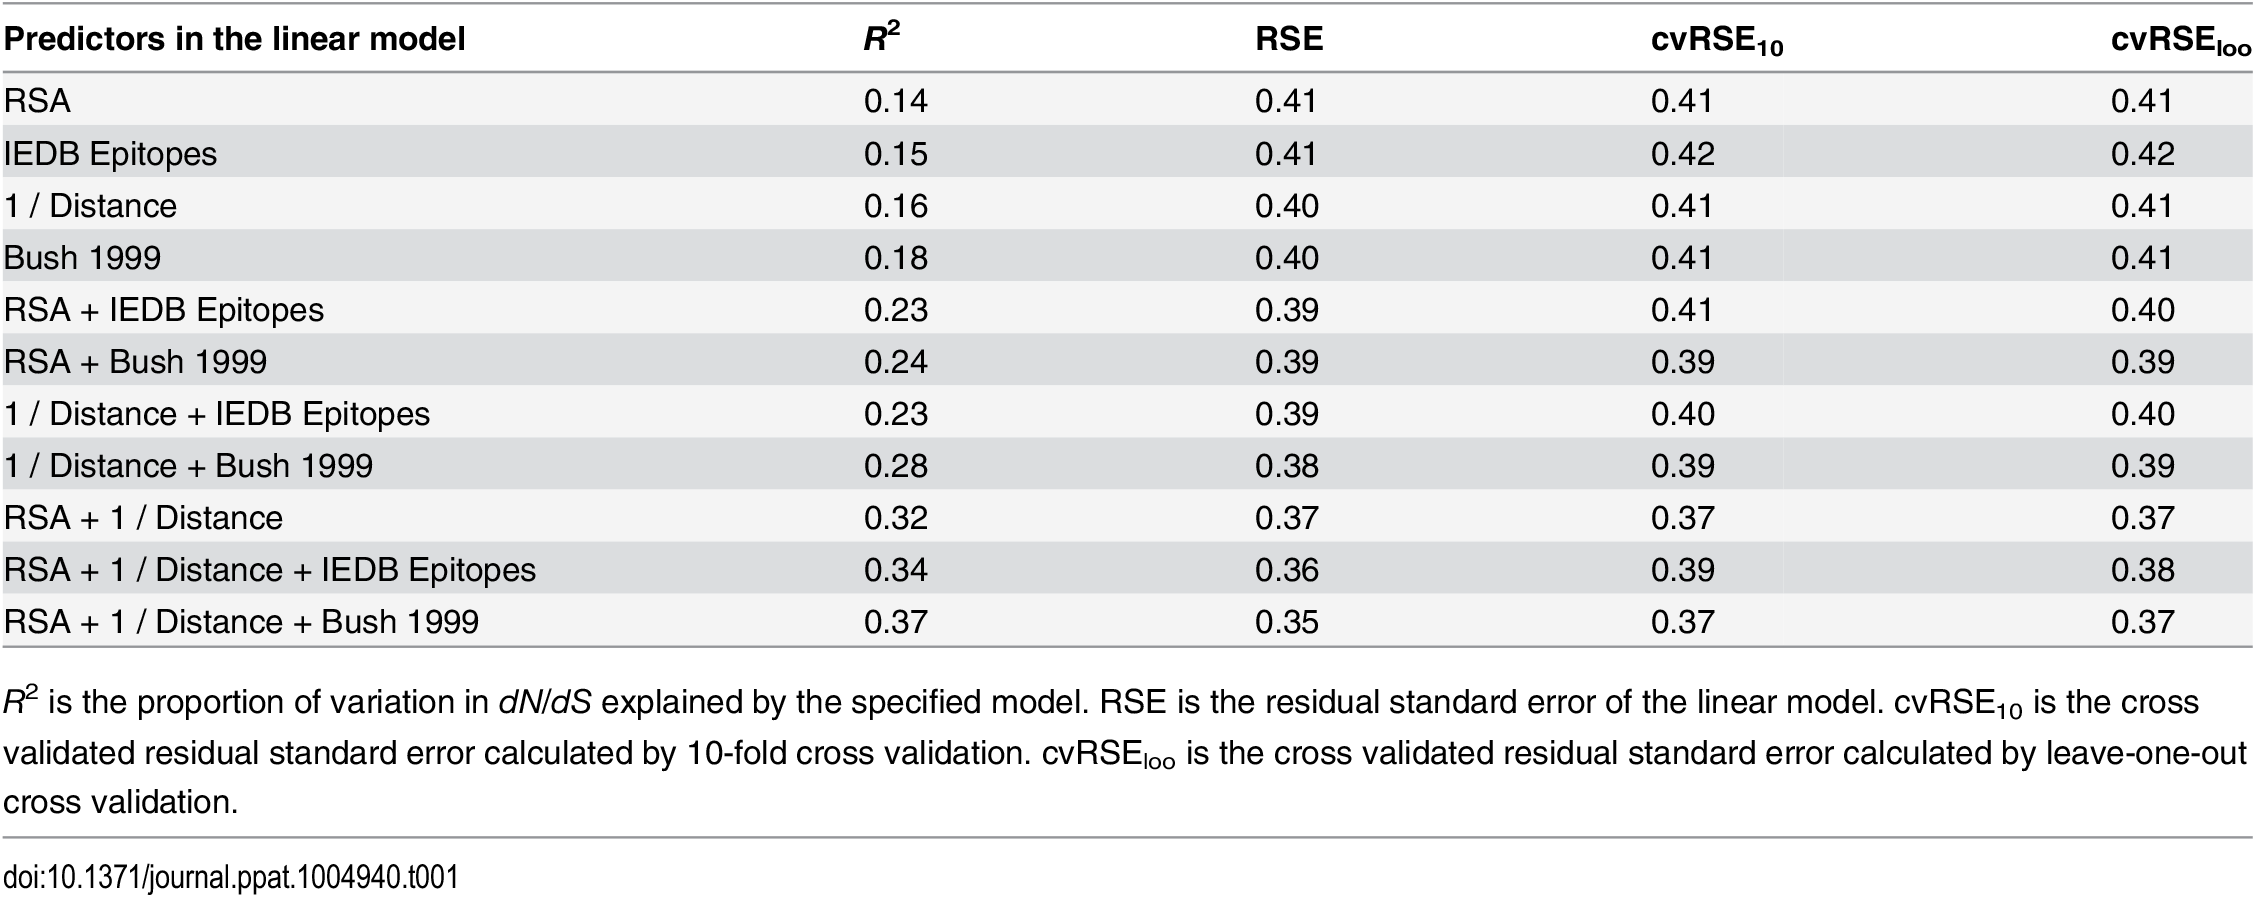 Predictive performance of each linear model considered.